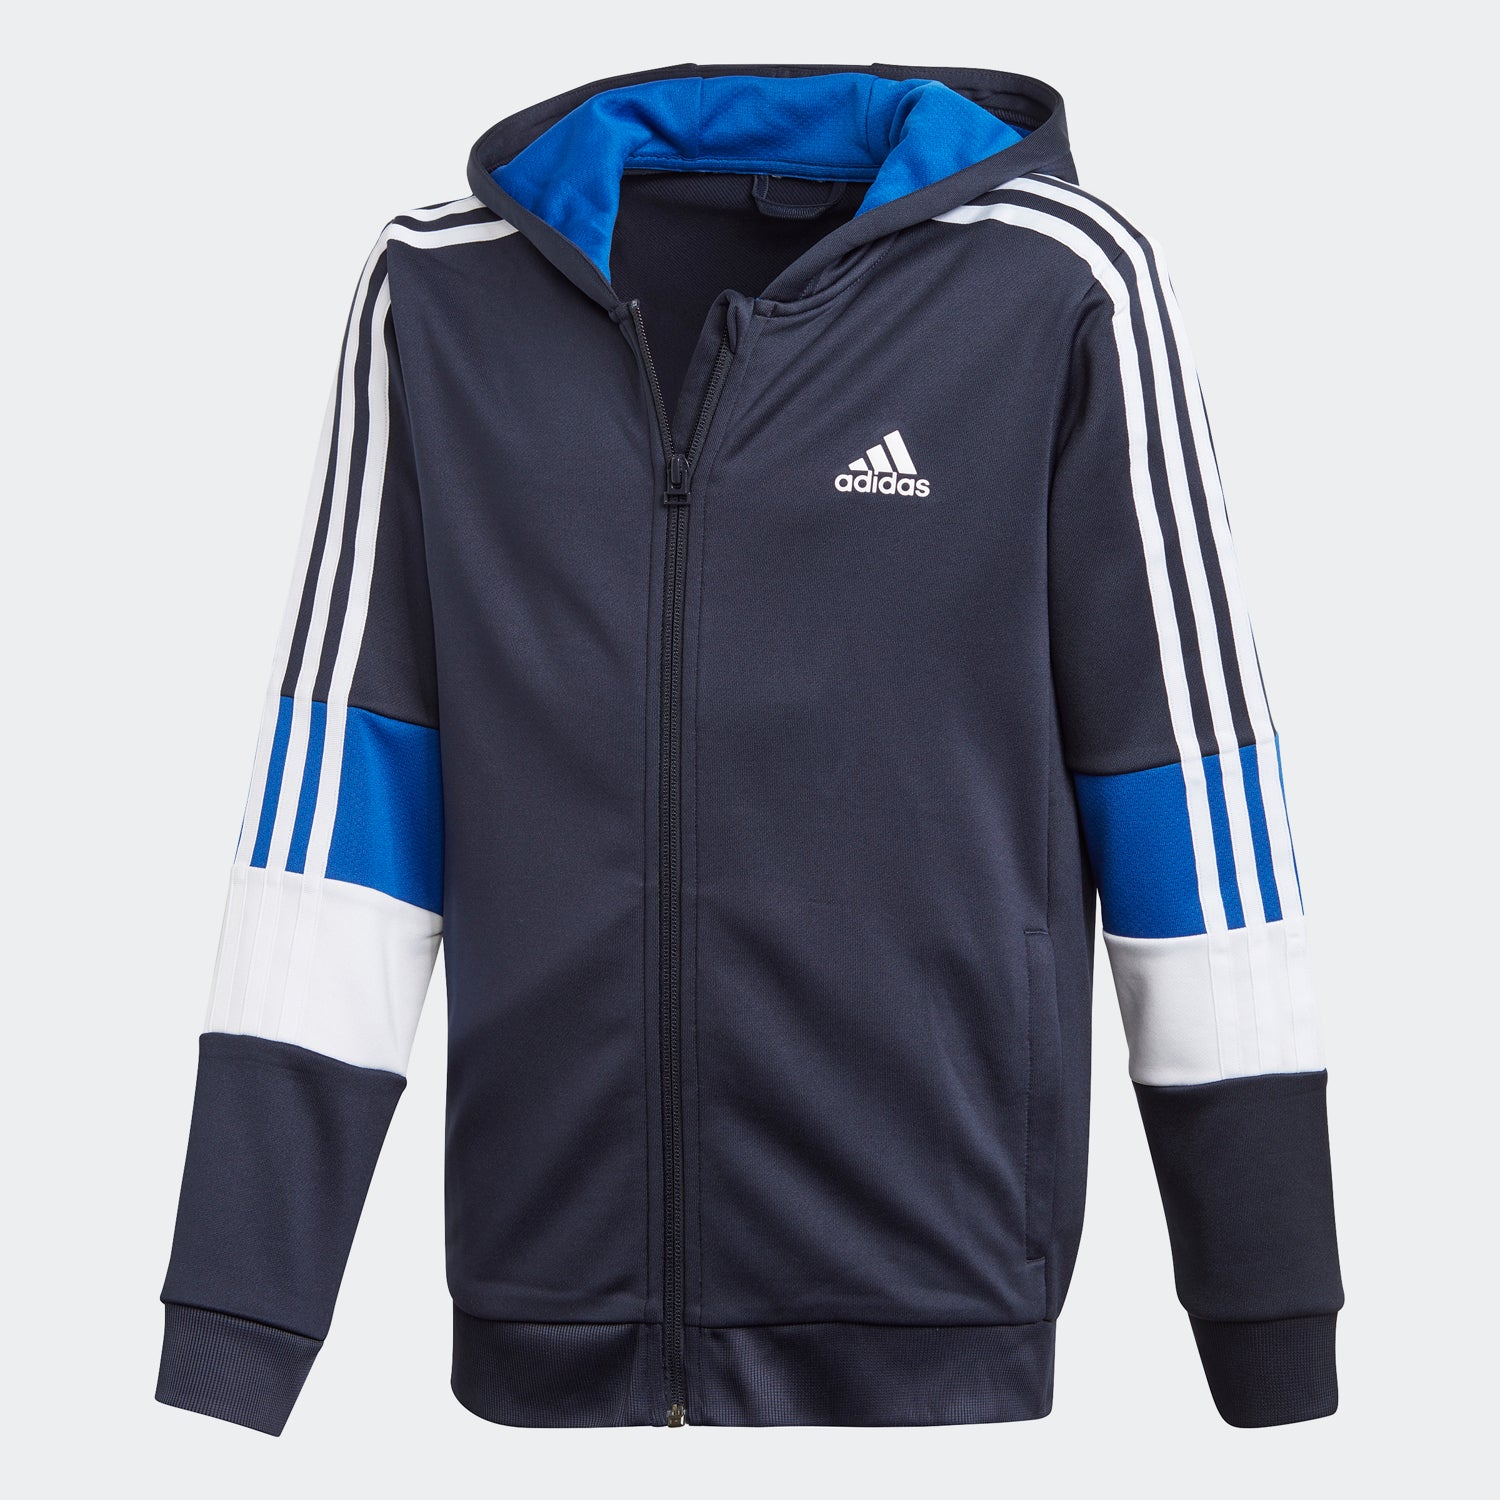 ADIDAS 3-STRIPES FULL-ZIP HOODIE For Kids - Valley Sports UK